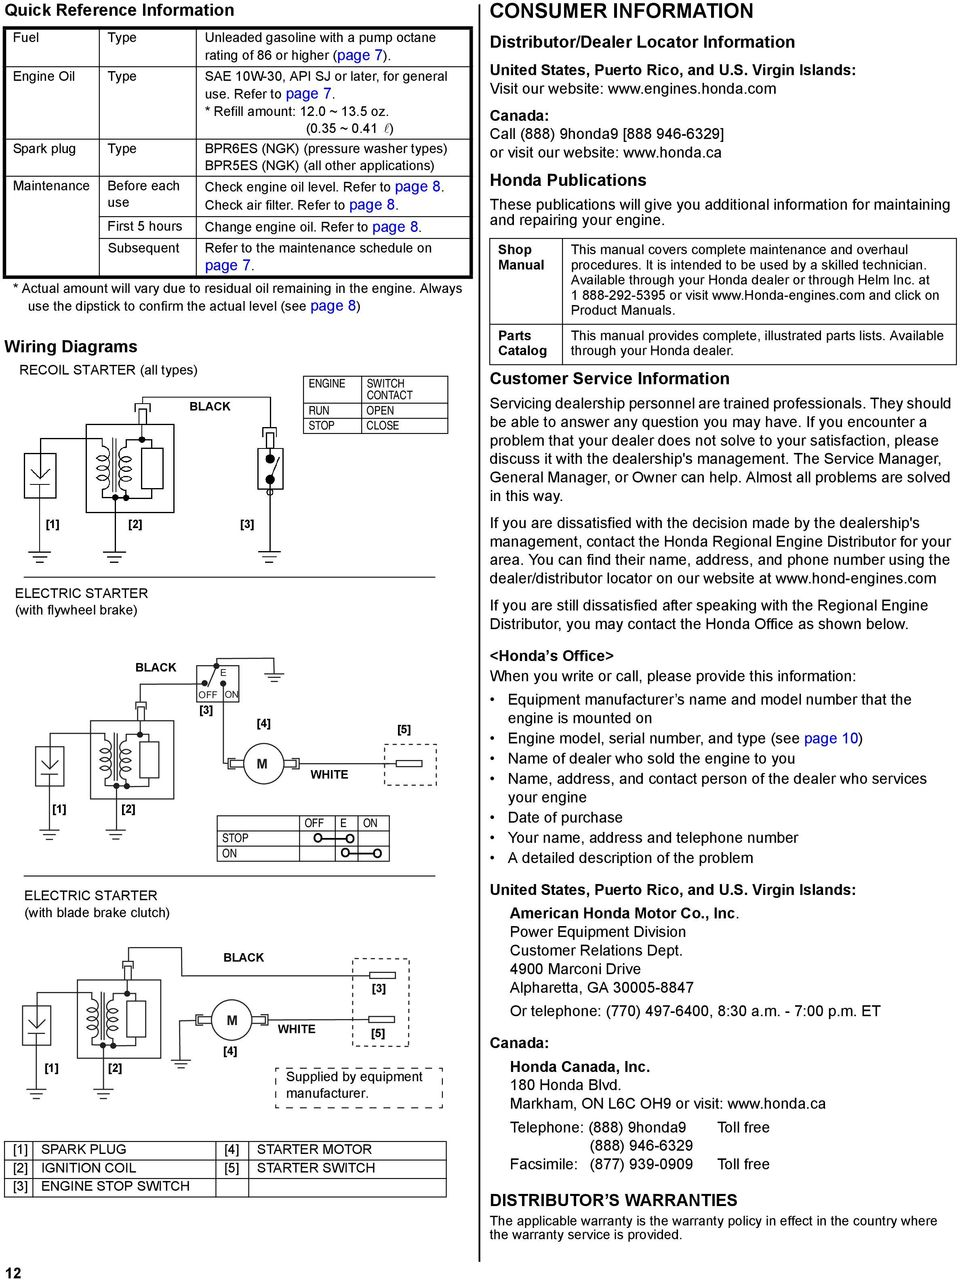 Fuel Filter Location Honda Gc160 Engine Parts Diagram 2012 Honda